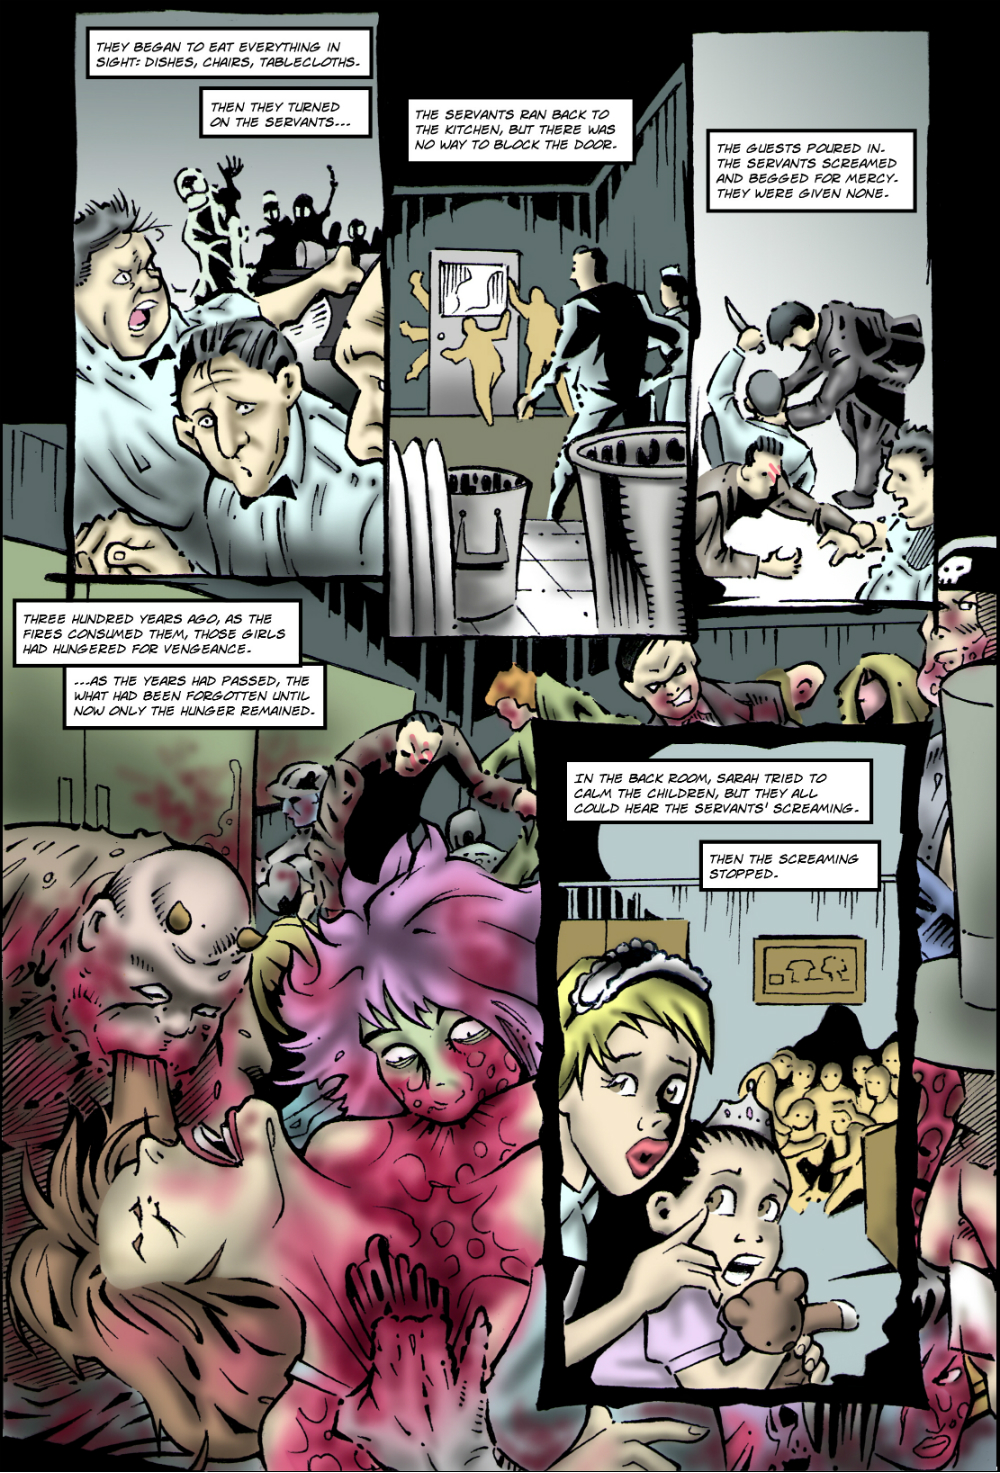 FEAST page 4 - story 23